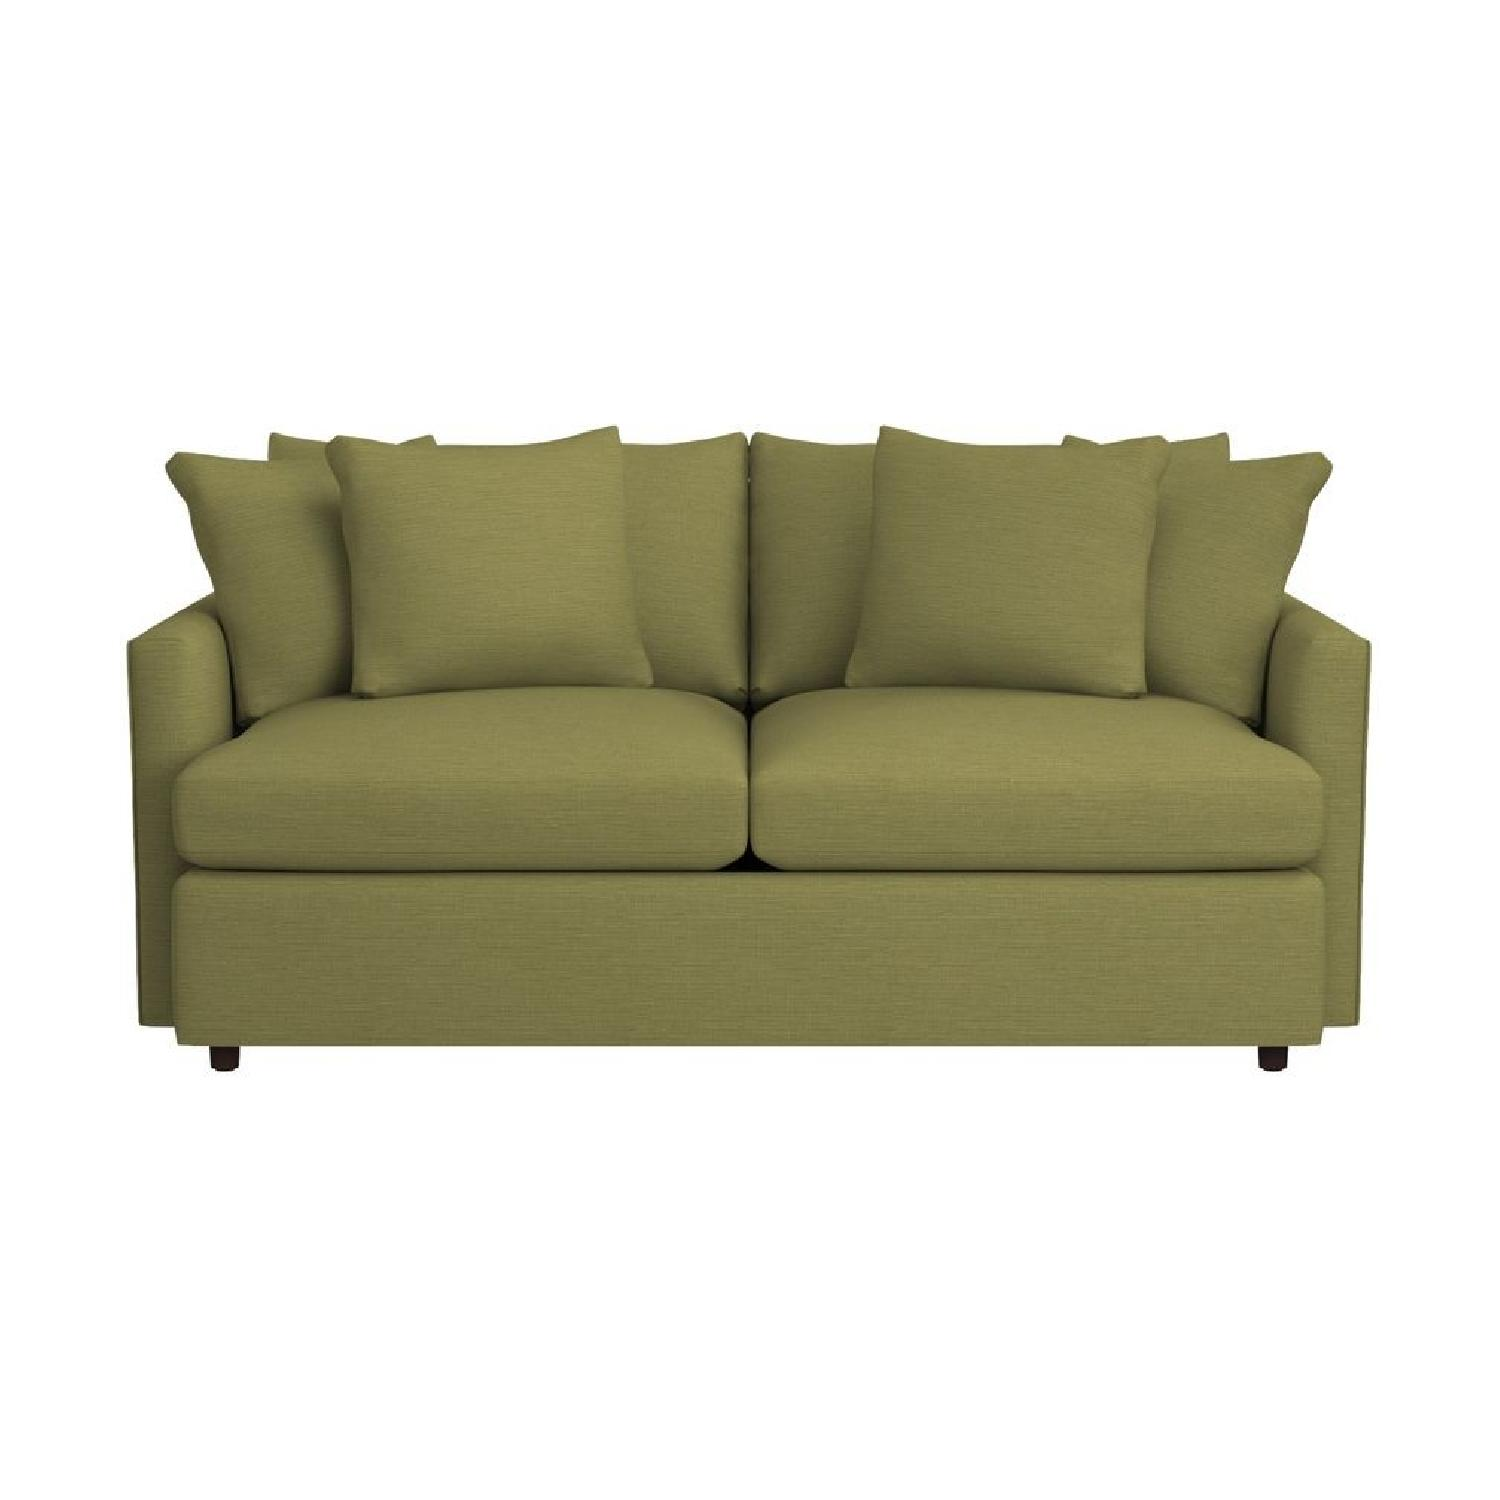 Crate & Barrel Lounge II Apartment Sofa & Ottoman